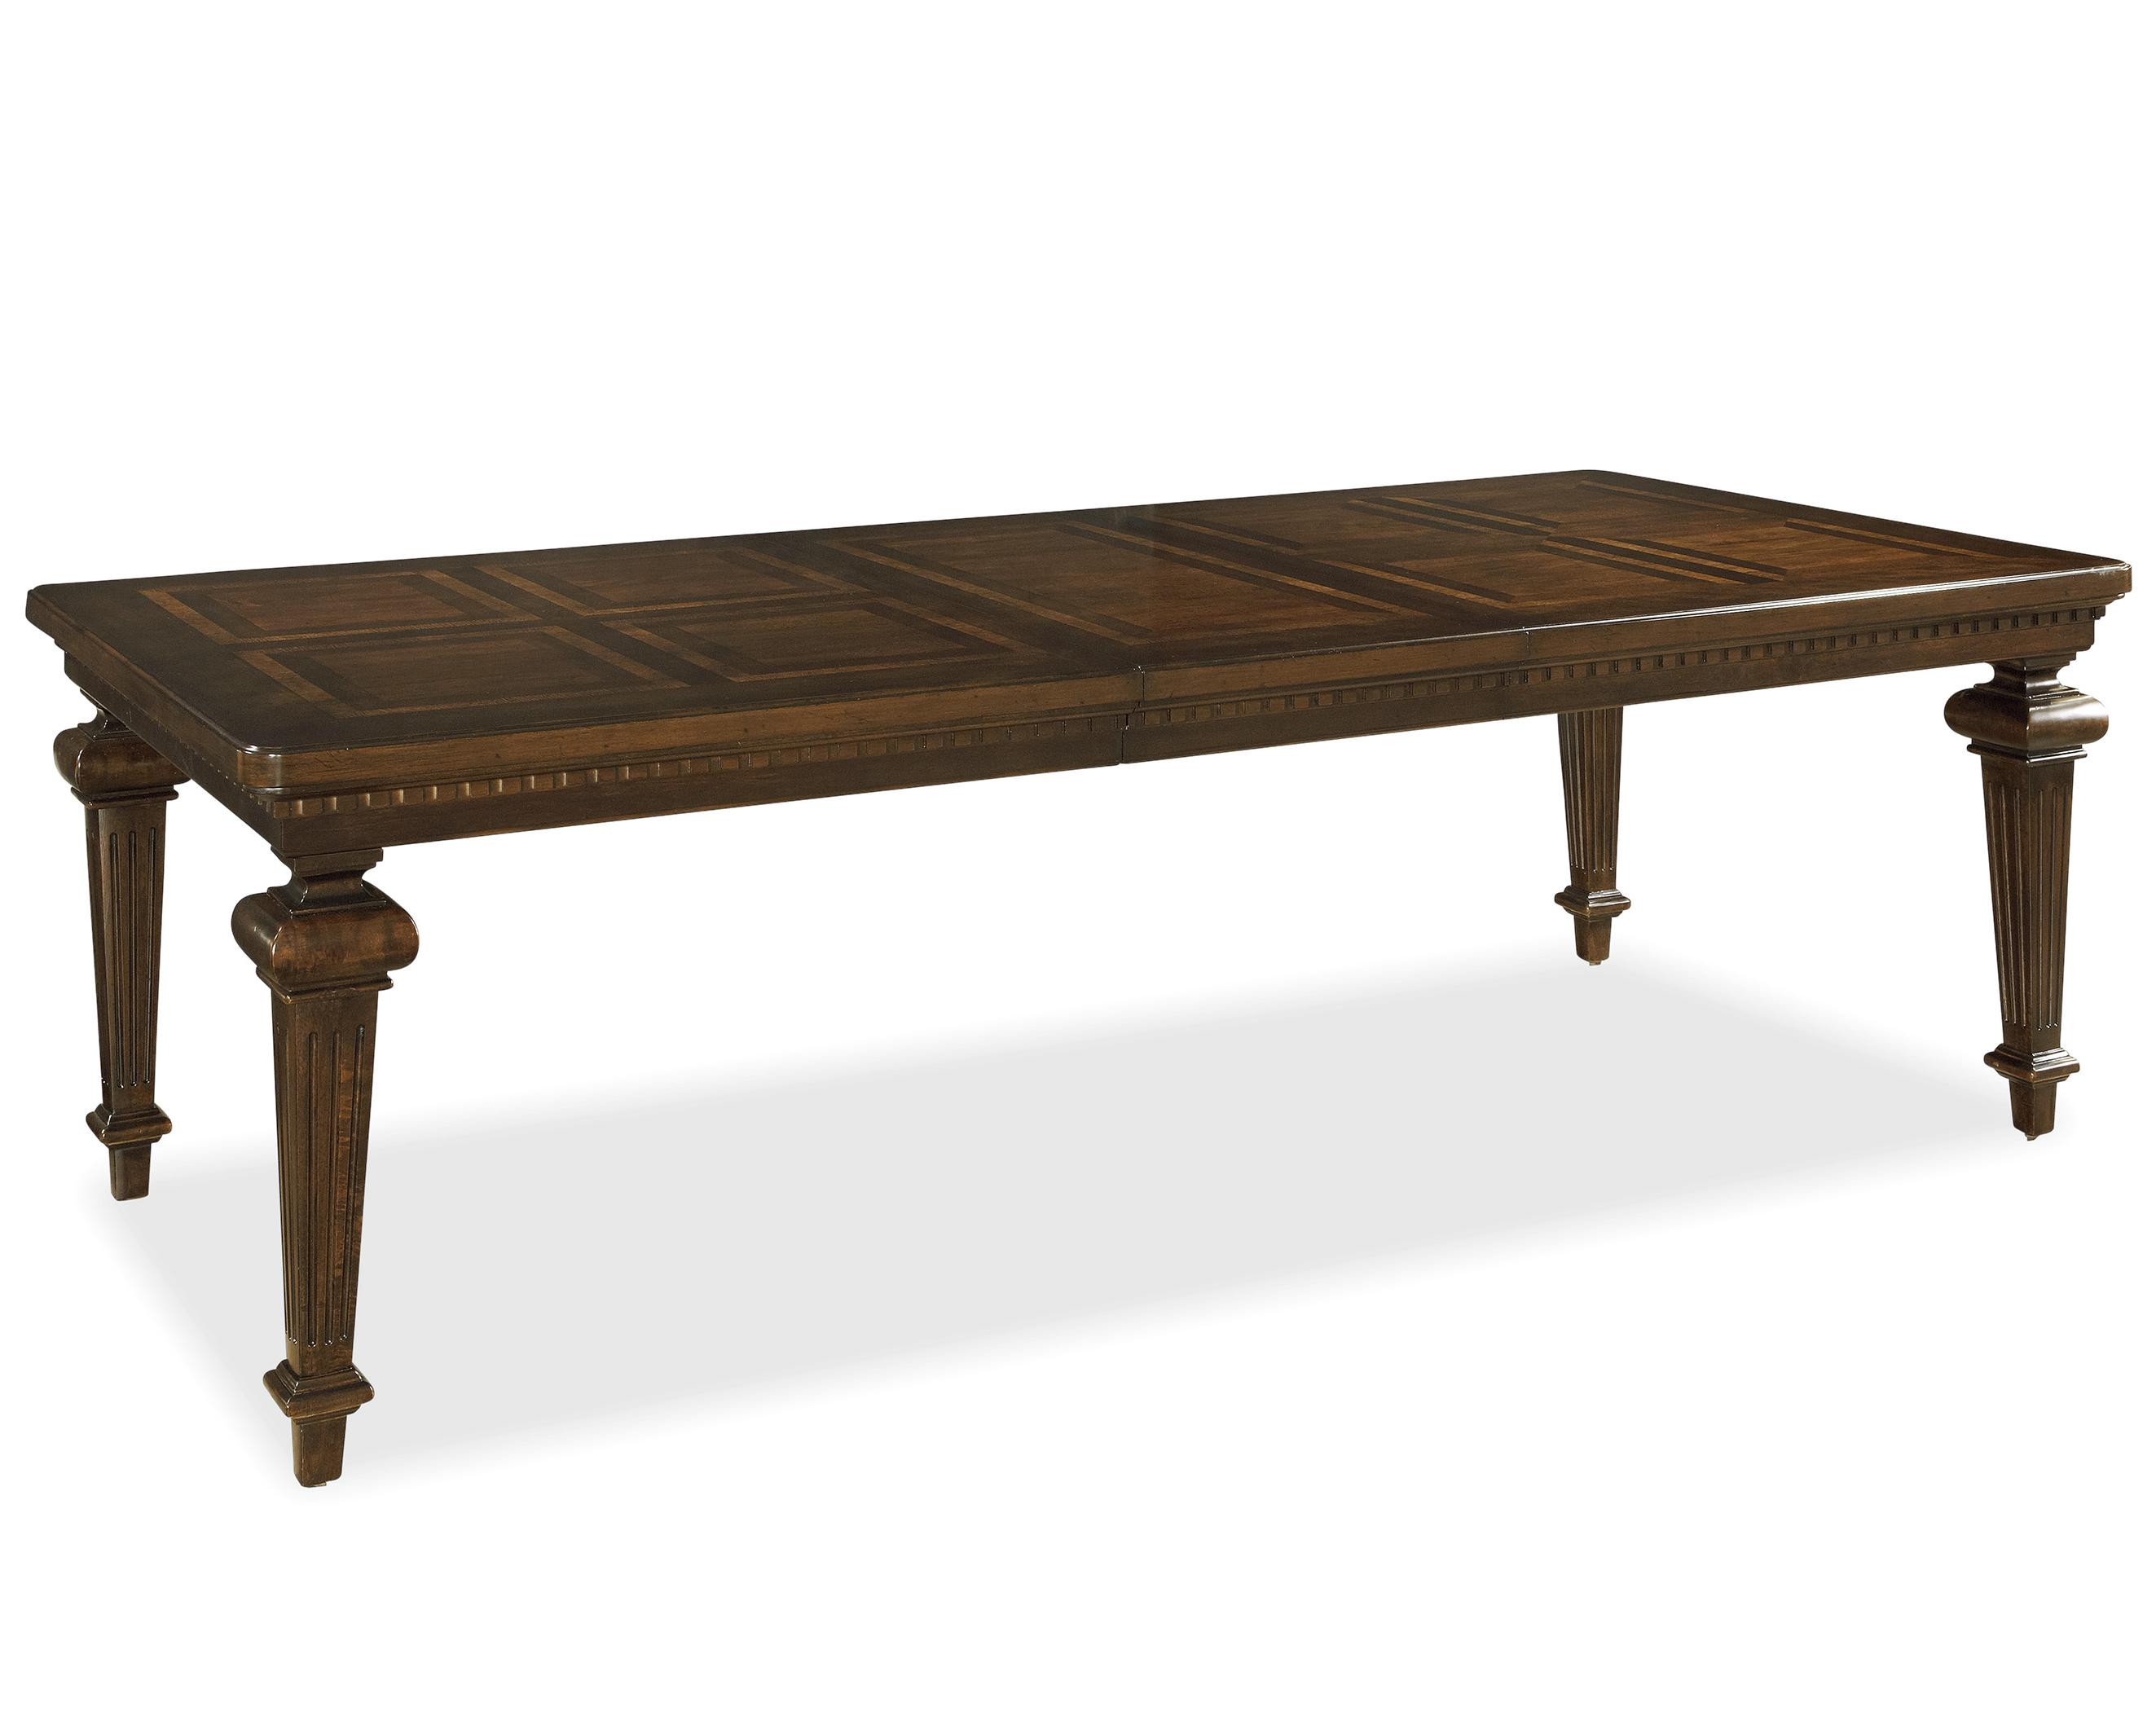 Morris Home Furnishings Providence Providence Dining Table - Item Number: 356653